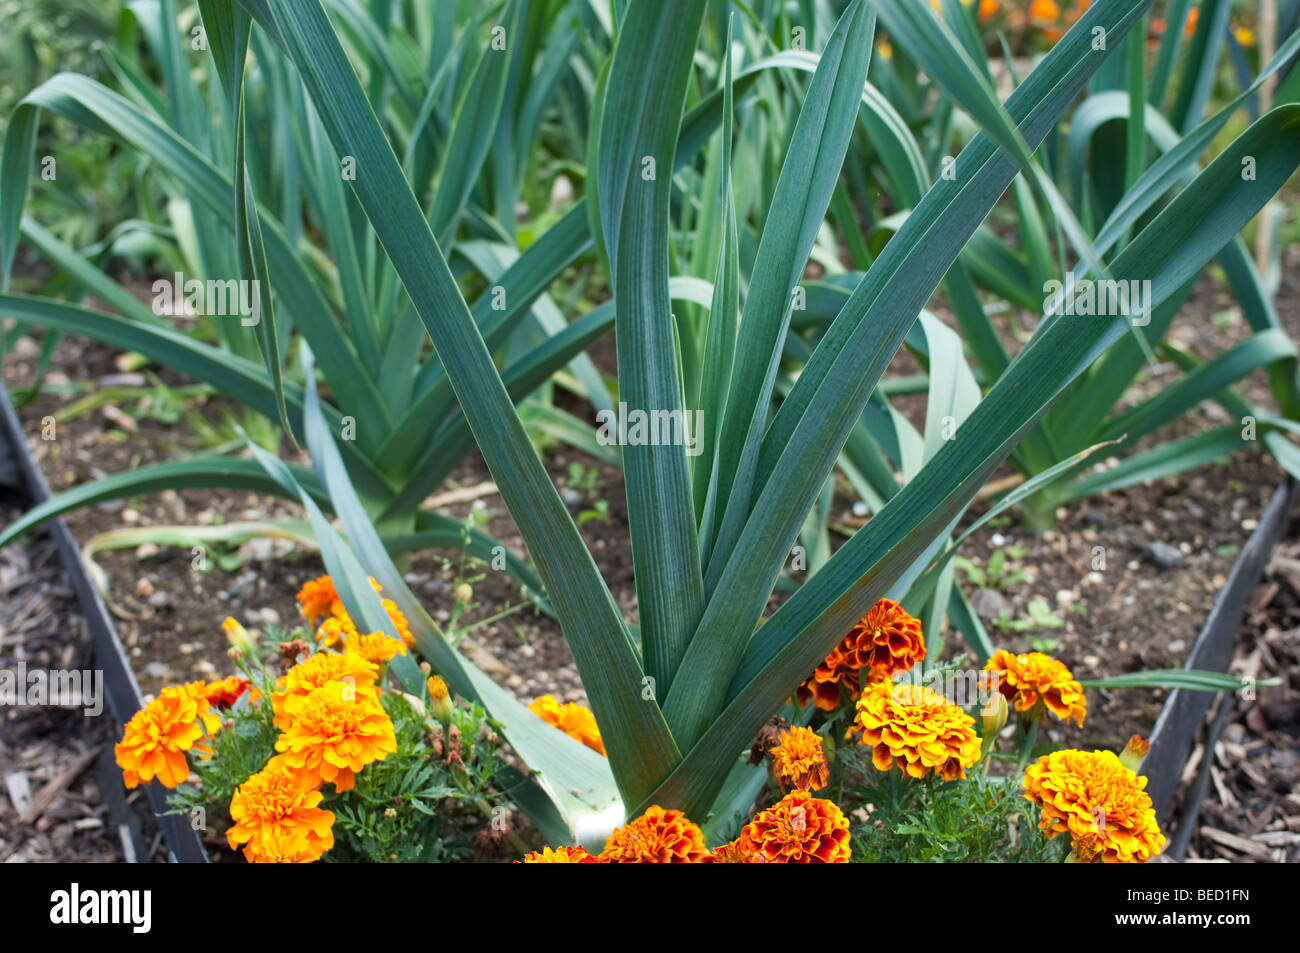 Marigolds Growing Next To Leeks And Onions In A Vegetable Garden Stock Photo Royalty Free Image